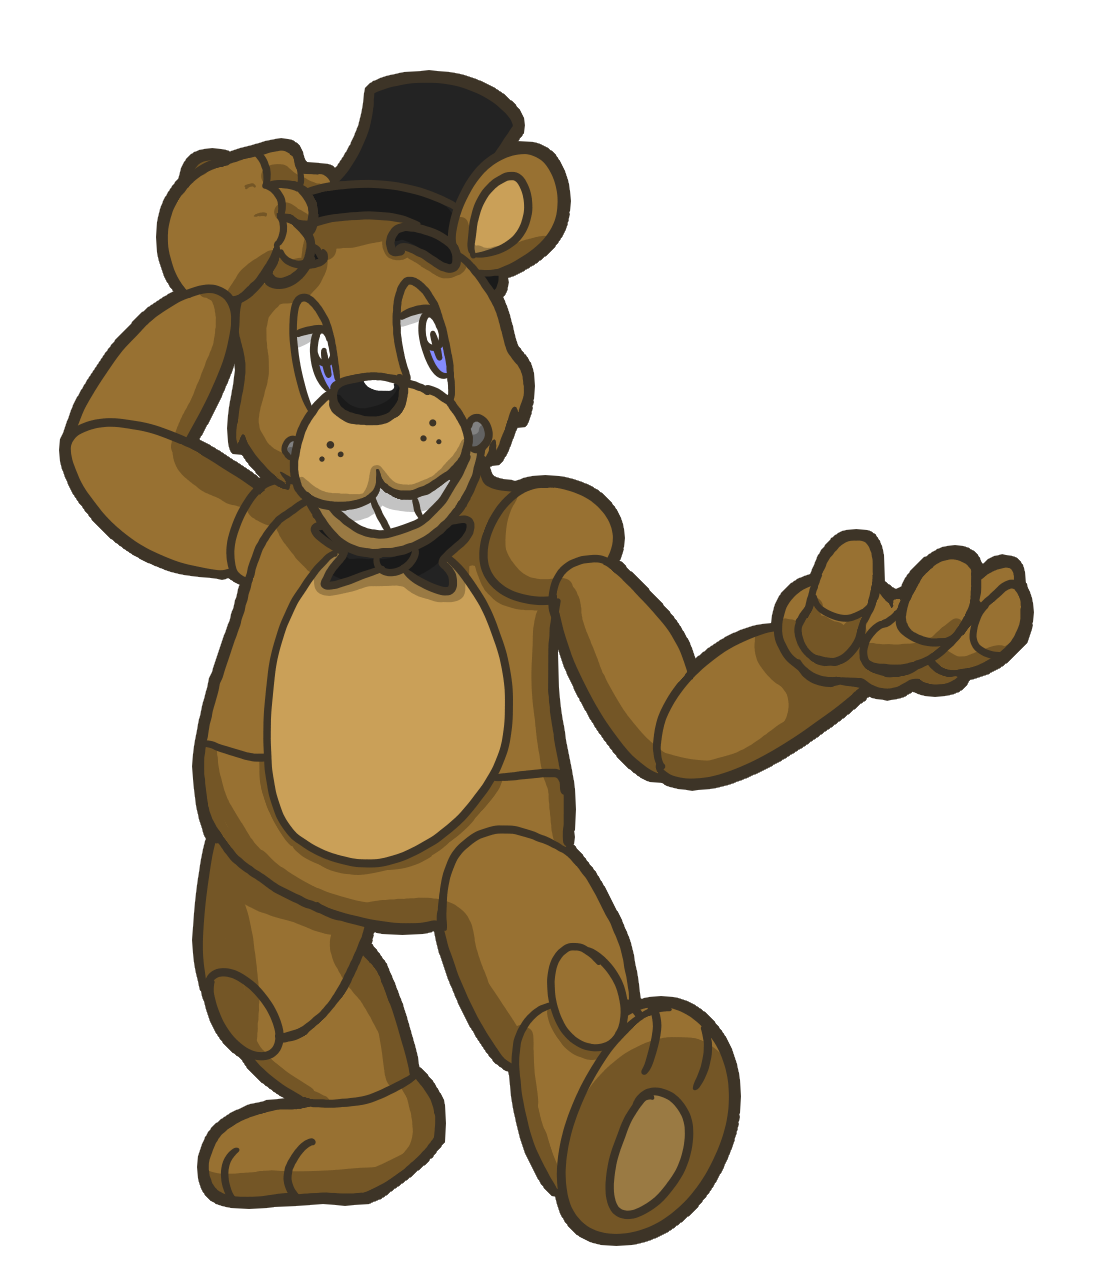 Free coloring pages of freddy fazbear